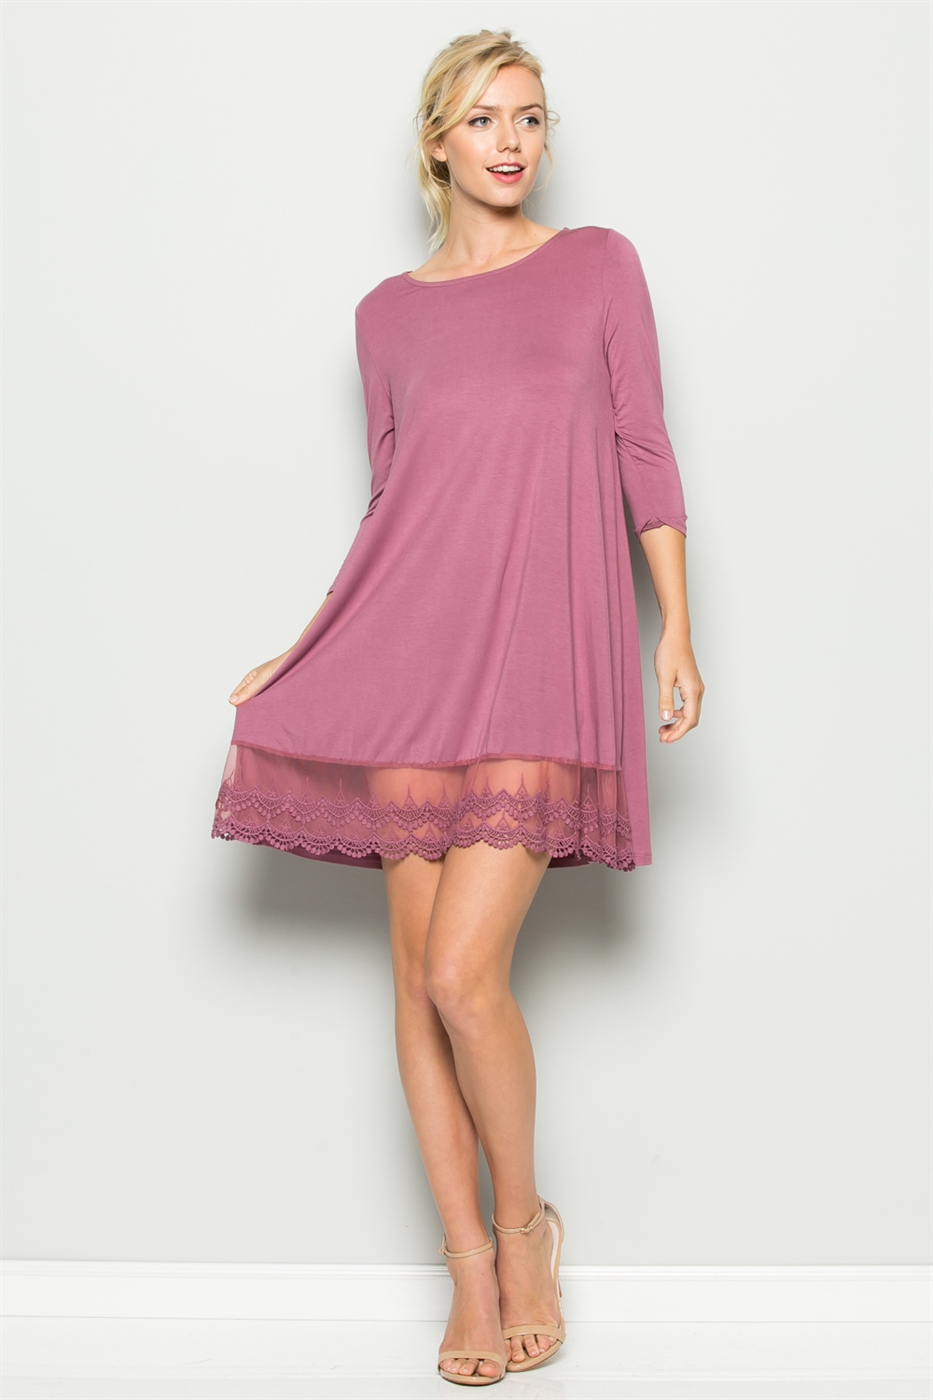 LACE HEM SCOOP NECK DRESS - orangeshine.com